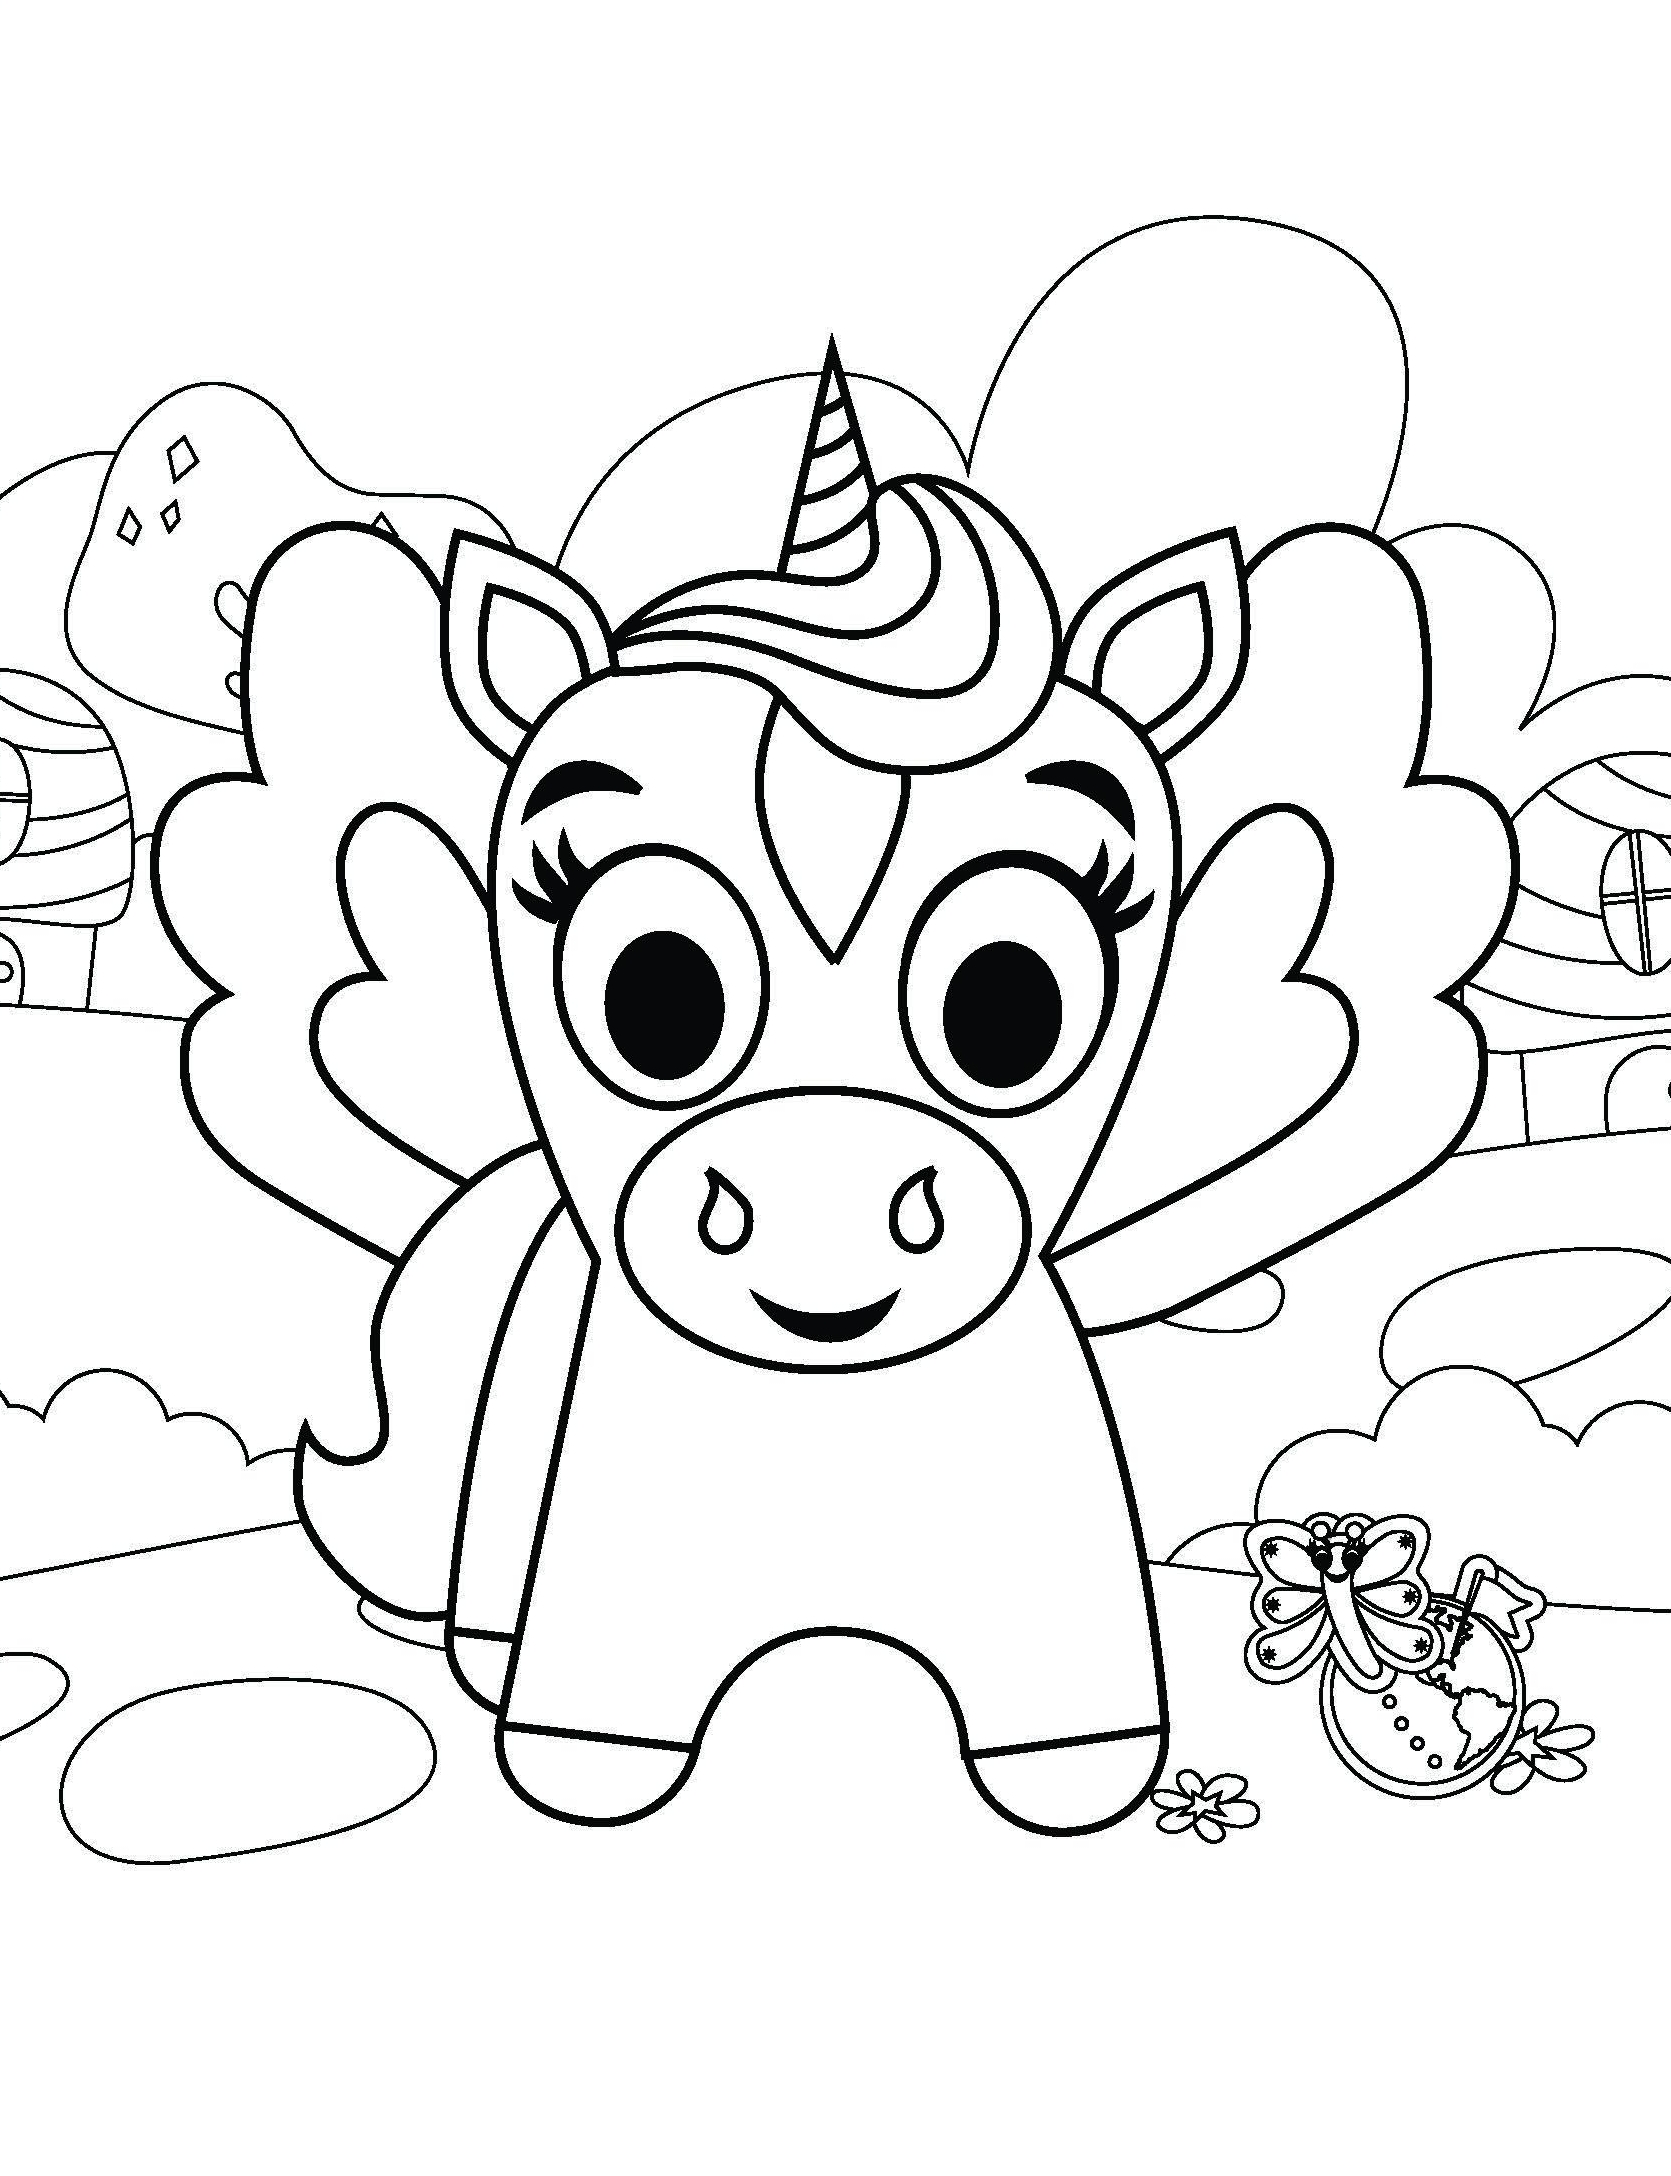 Coloring Pages Flairfriends